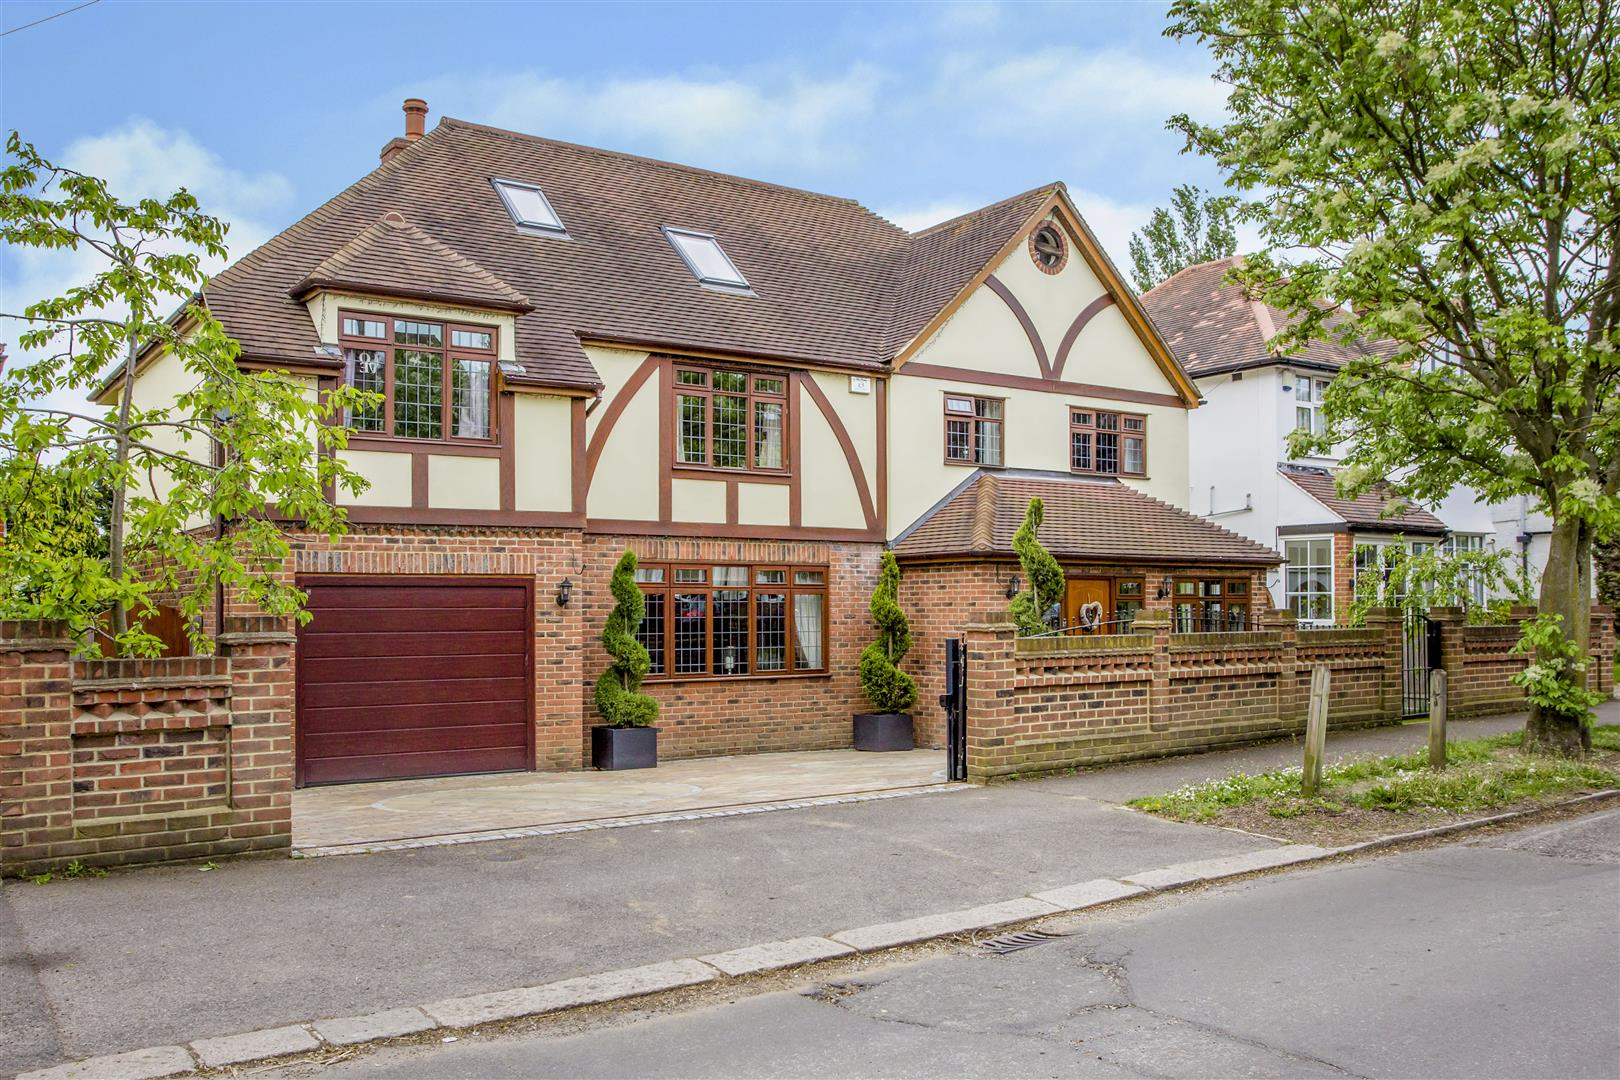 South Drive, Warley, Brentwood